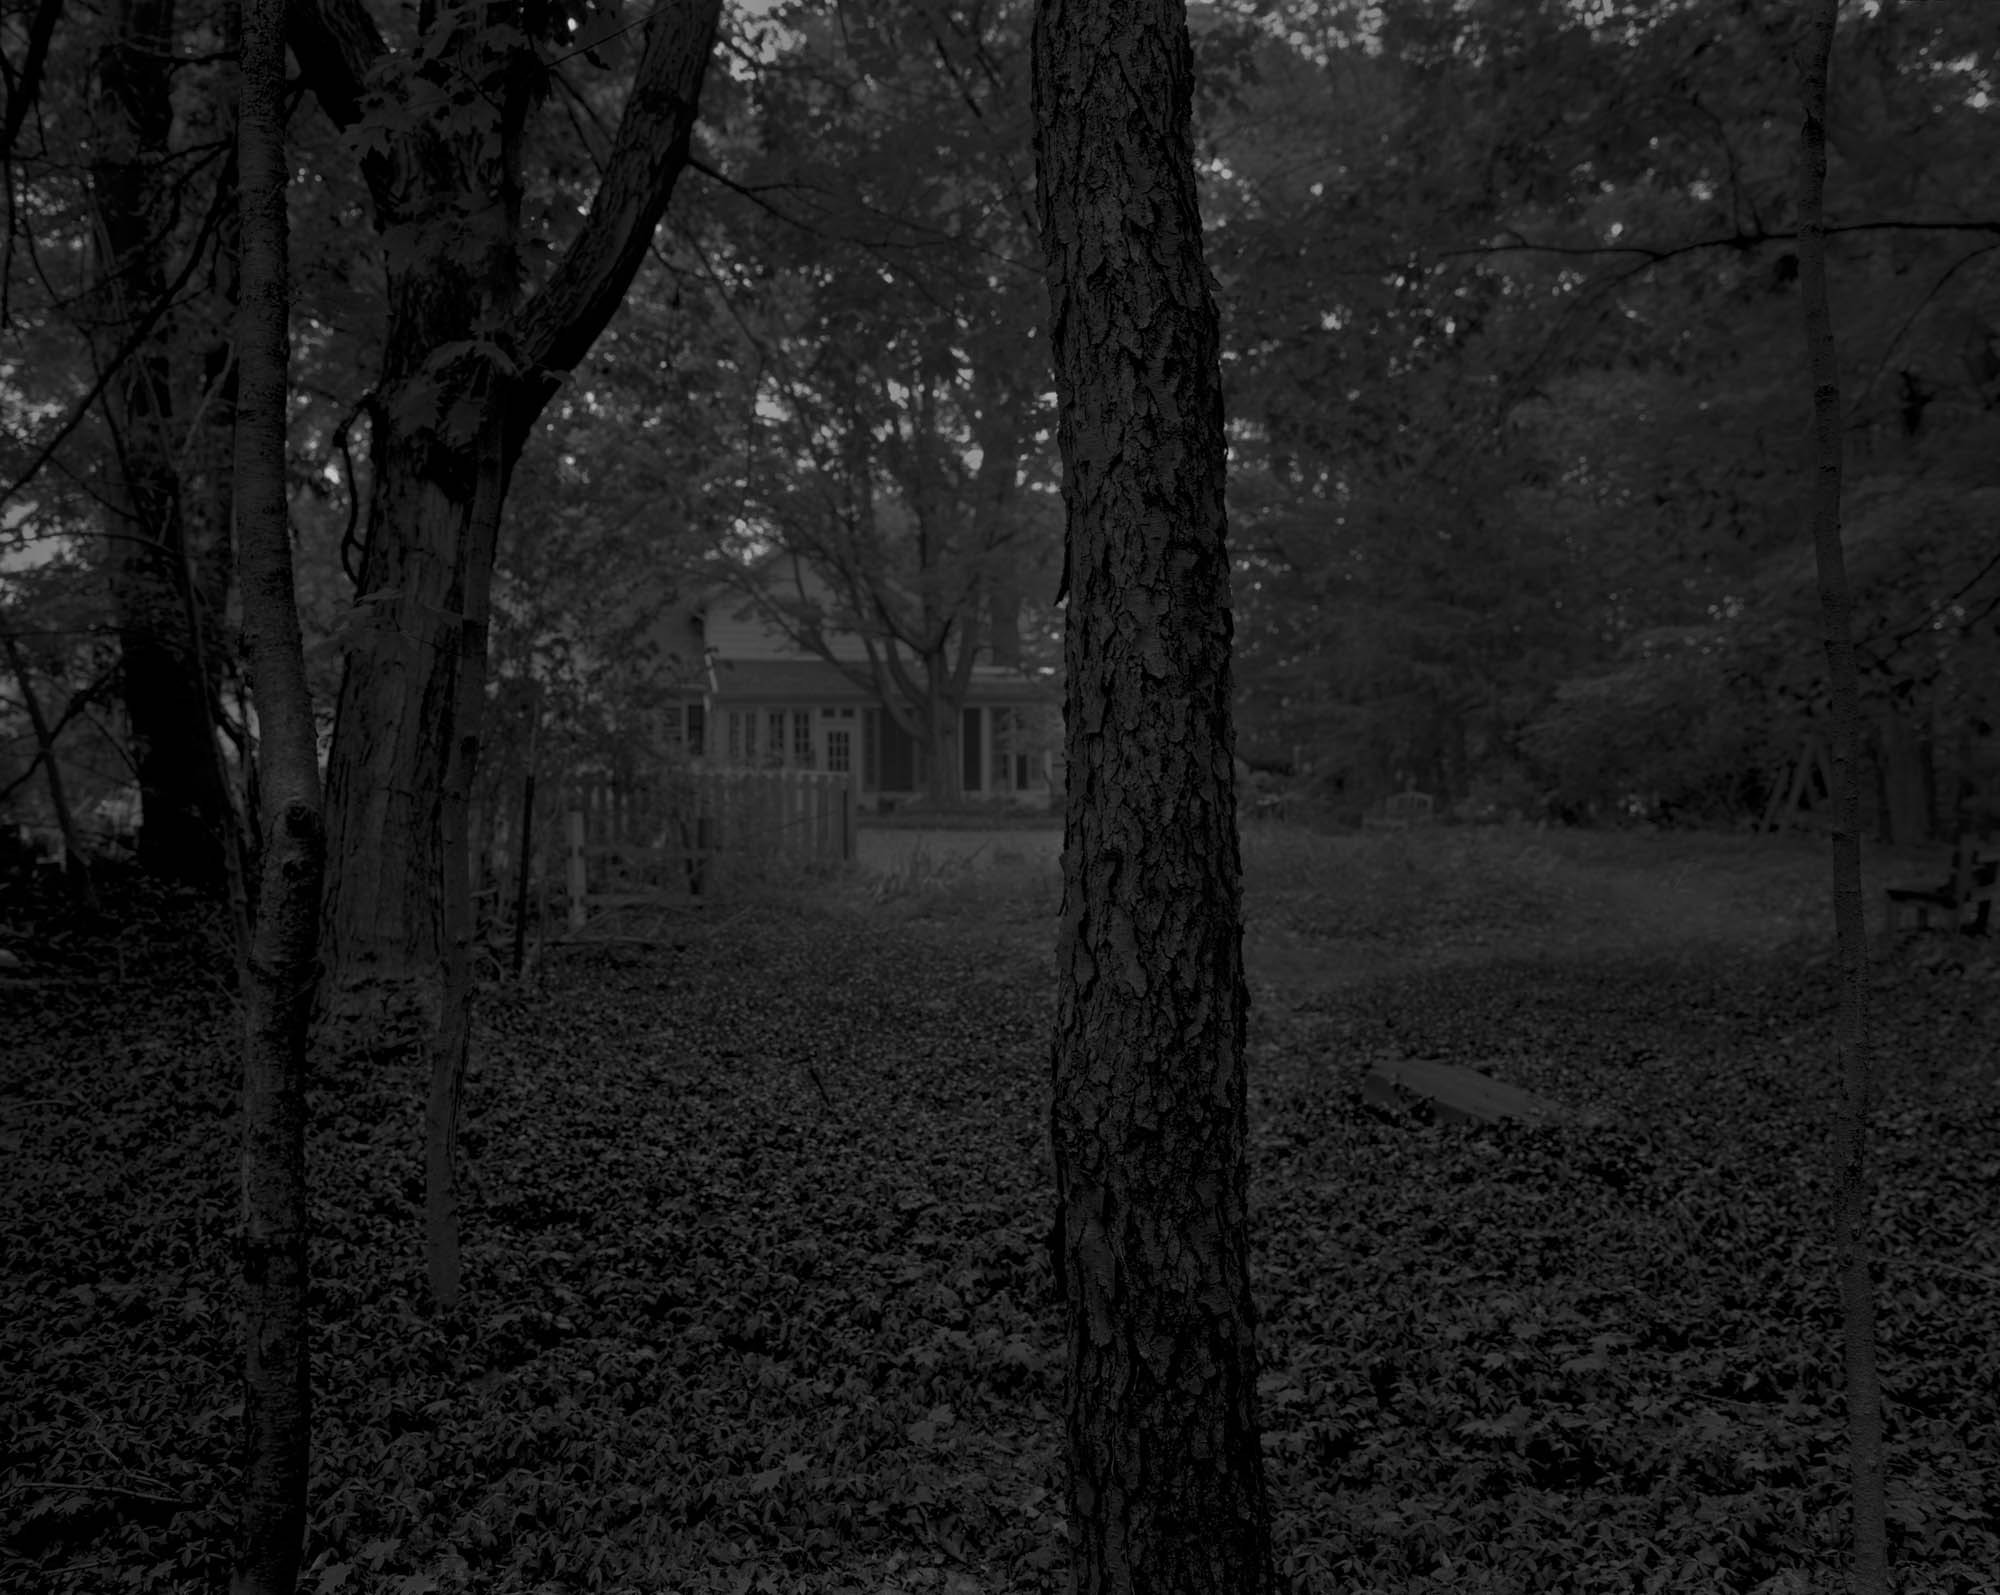 A black and white photo in a forest.